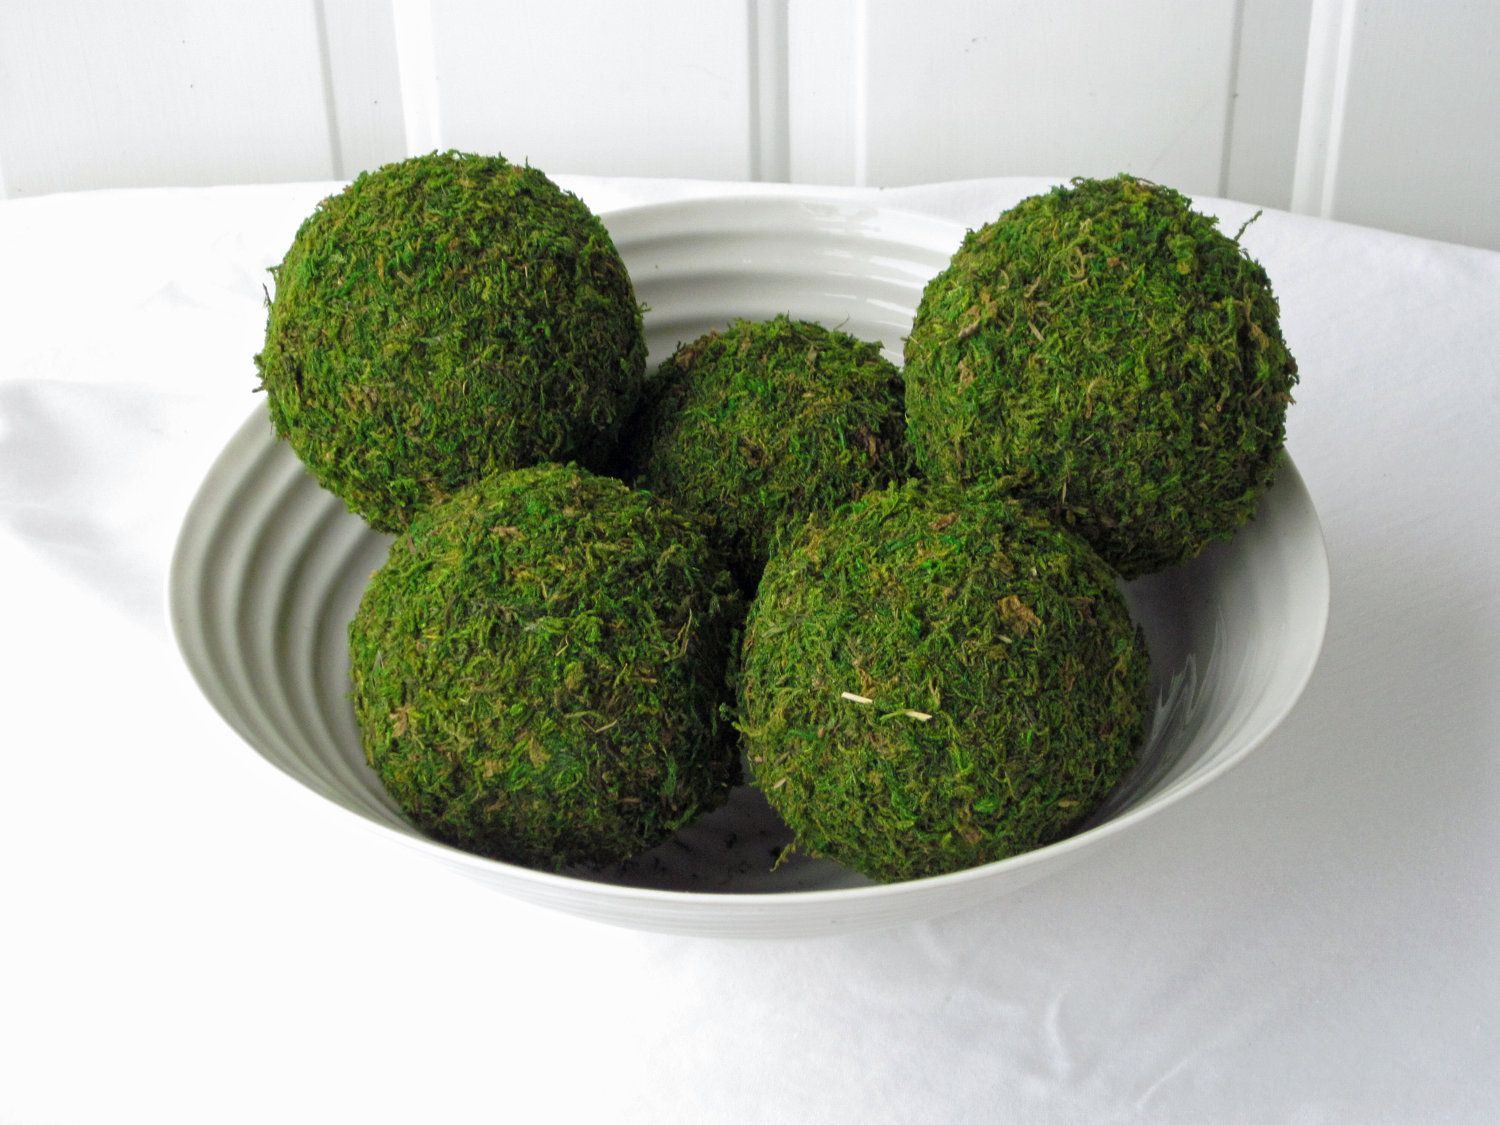 Decorative Moss Balls Captivating 32 Best Pomanders Images On Pinterest  Wedding Bouquets Wedding Inspiration Design